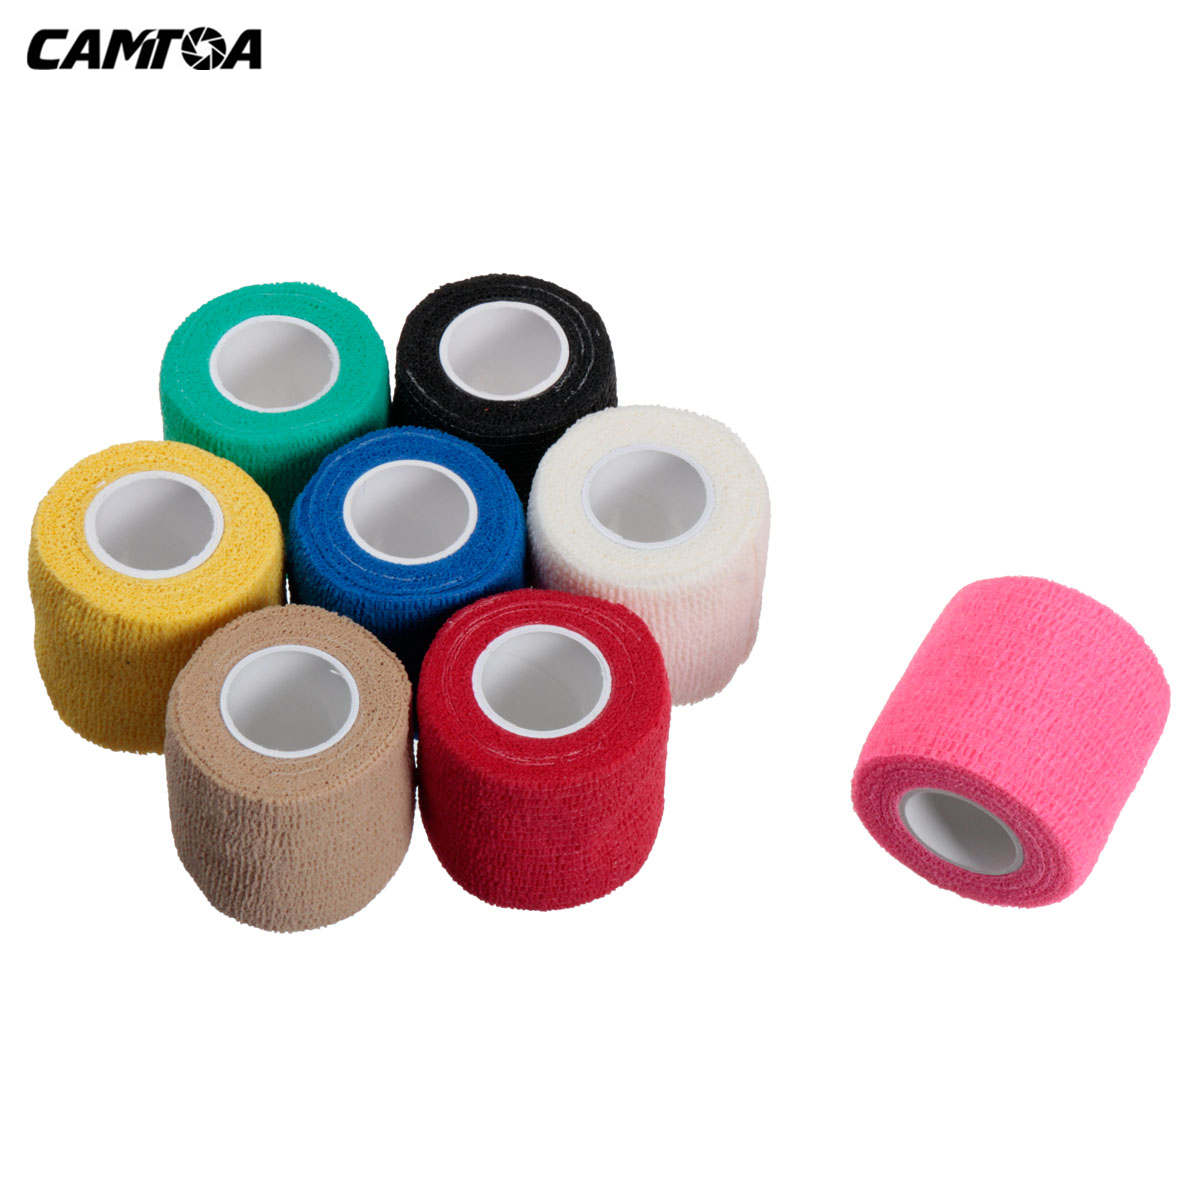 4.5m*5cm Fitness Weightlifting Self Adhesive Ankle Finger Muscles Care Elastic Medical Bandage Dressing Tape Sport Wrist Support